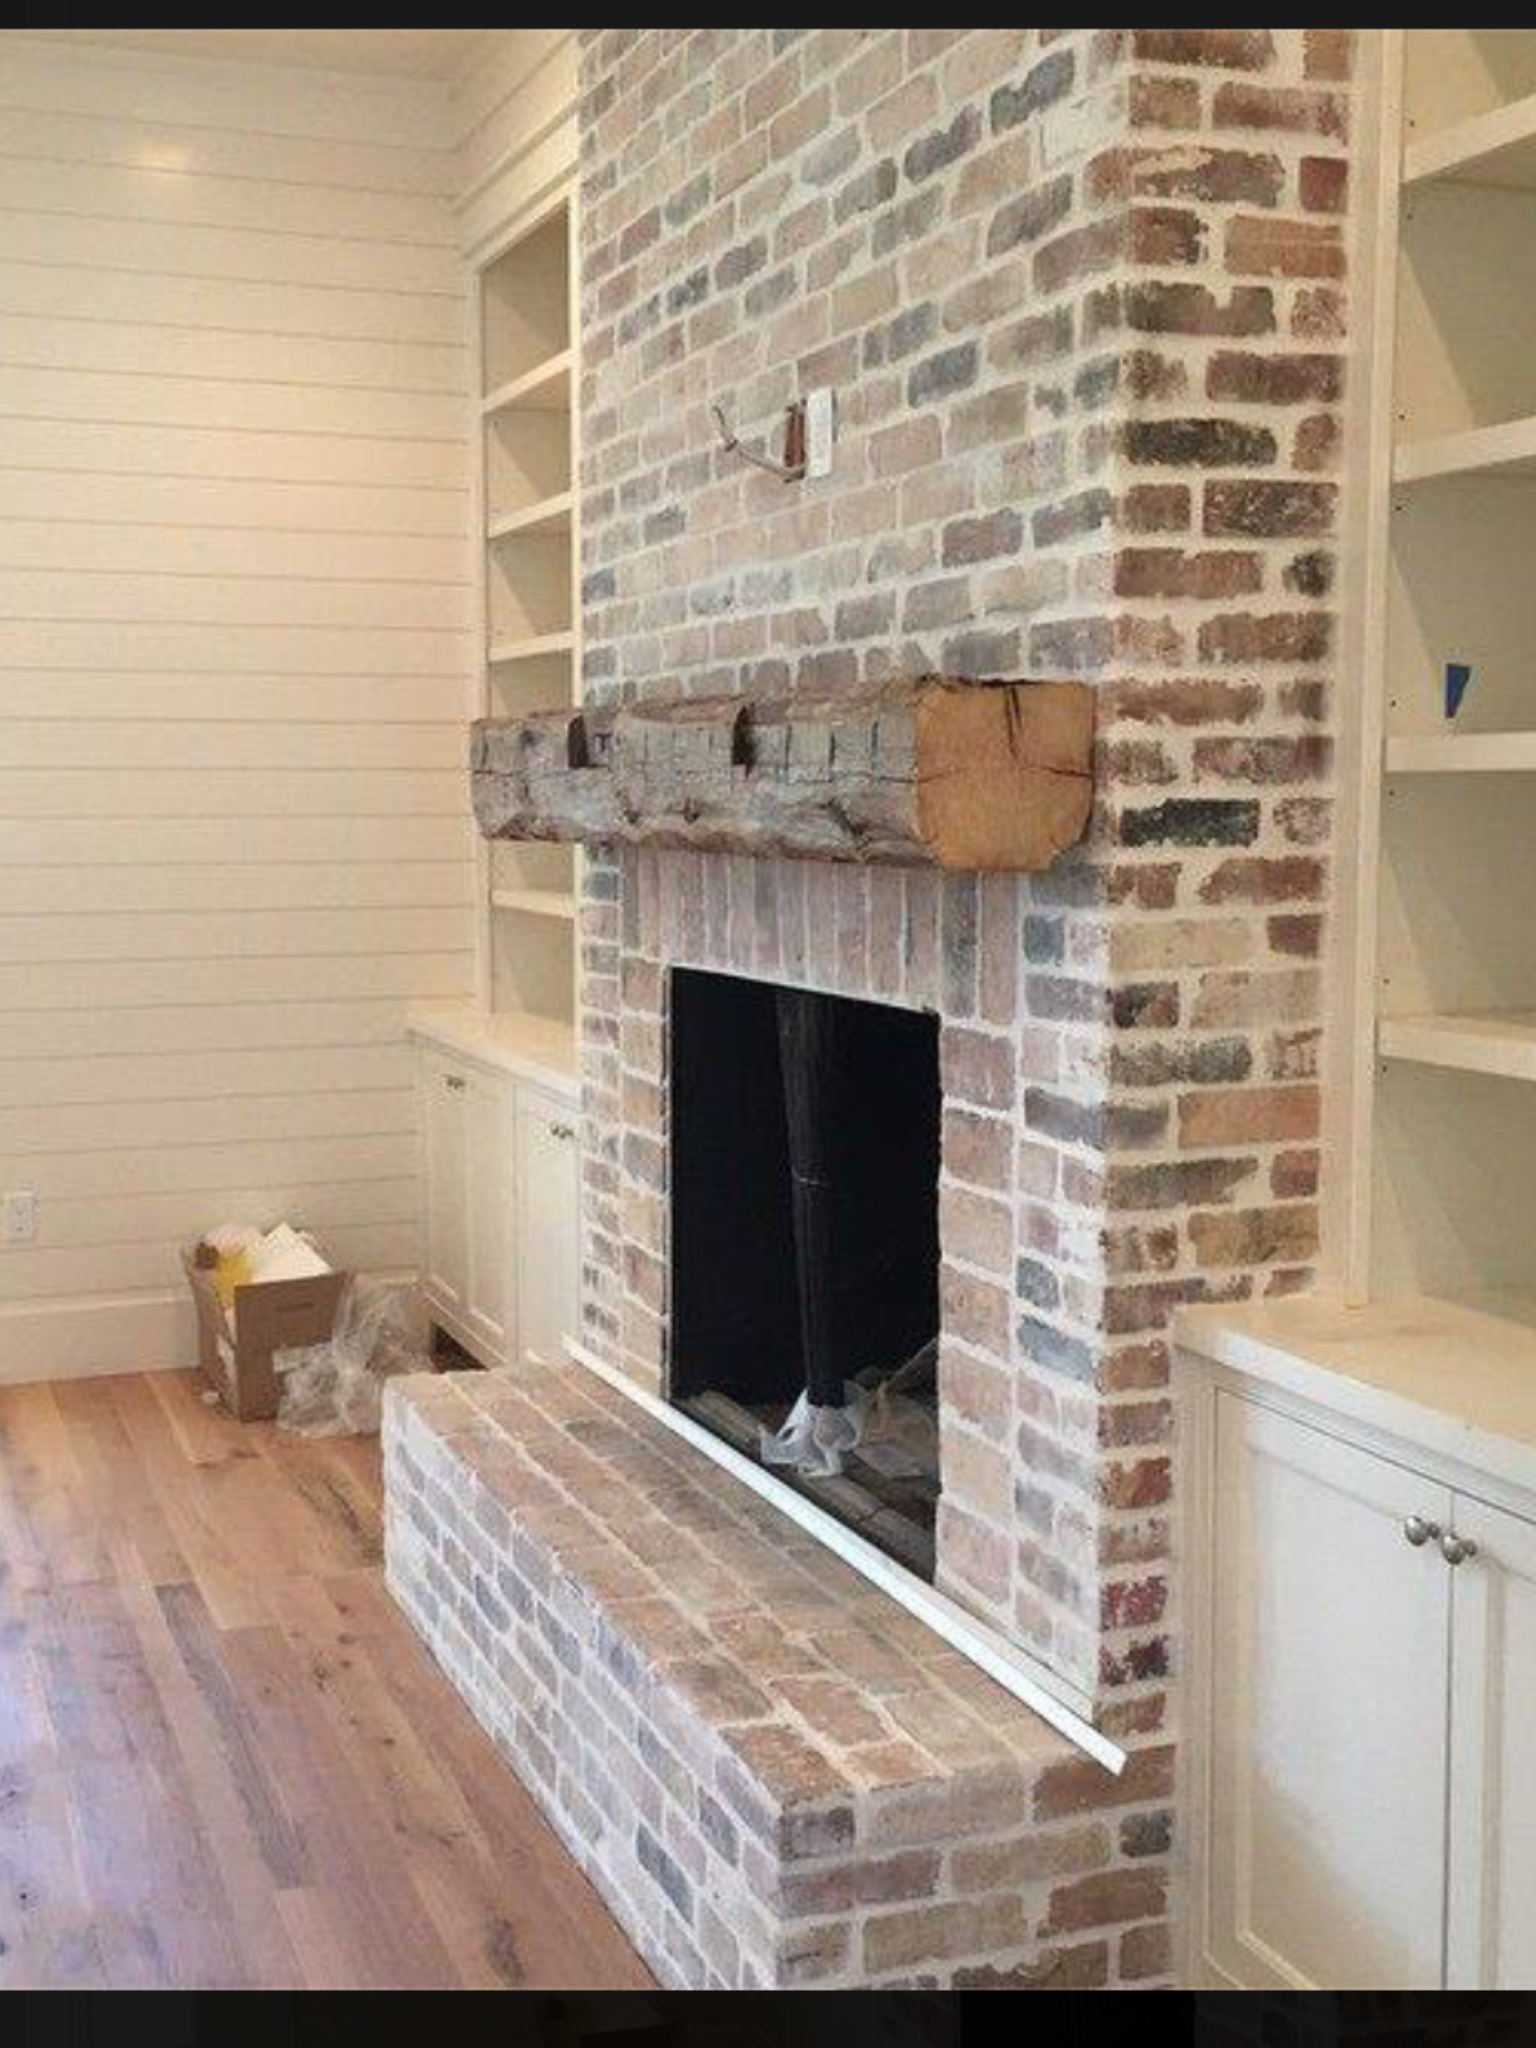 Mantel On Brick Fireplace Like The Muted Tone Of The Bricks The Aged Timber Shelf And The